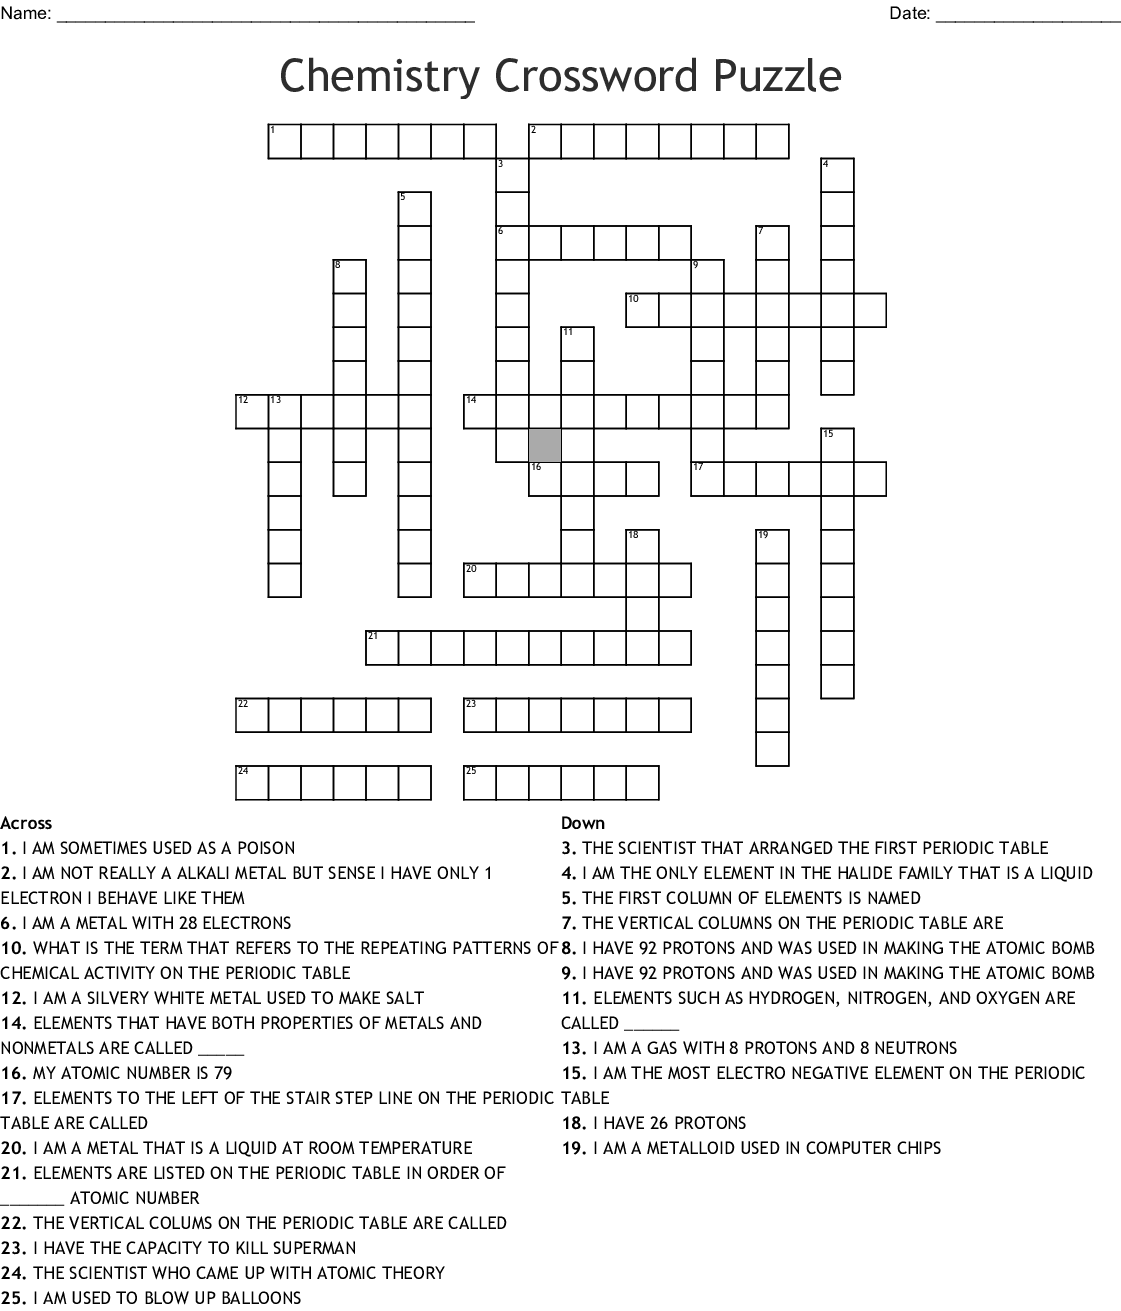 Periodic Table Crossword Puzzle Answers I Have 26 Protons